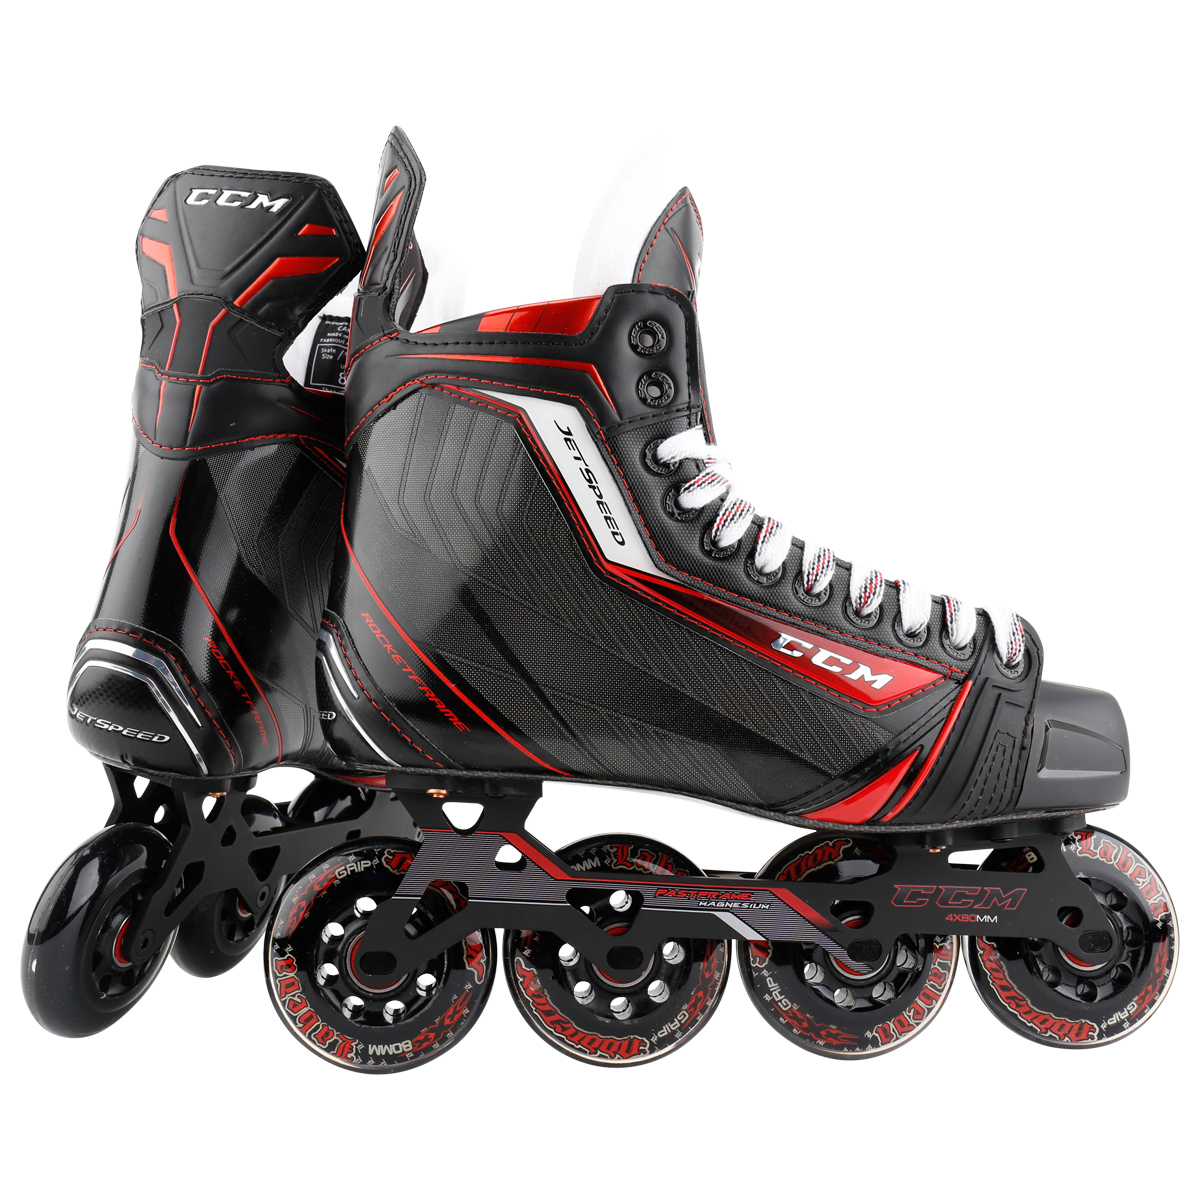 ccm jetspeed roller hockey skate review hockey world blog. Black Bedroom Furniture Sets. Home Design Ideas